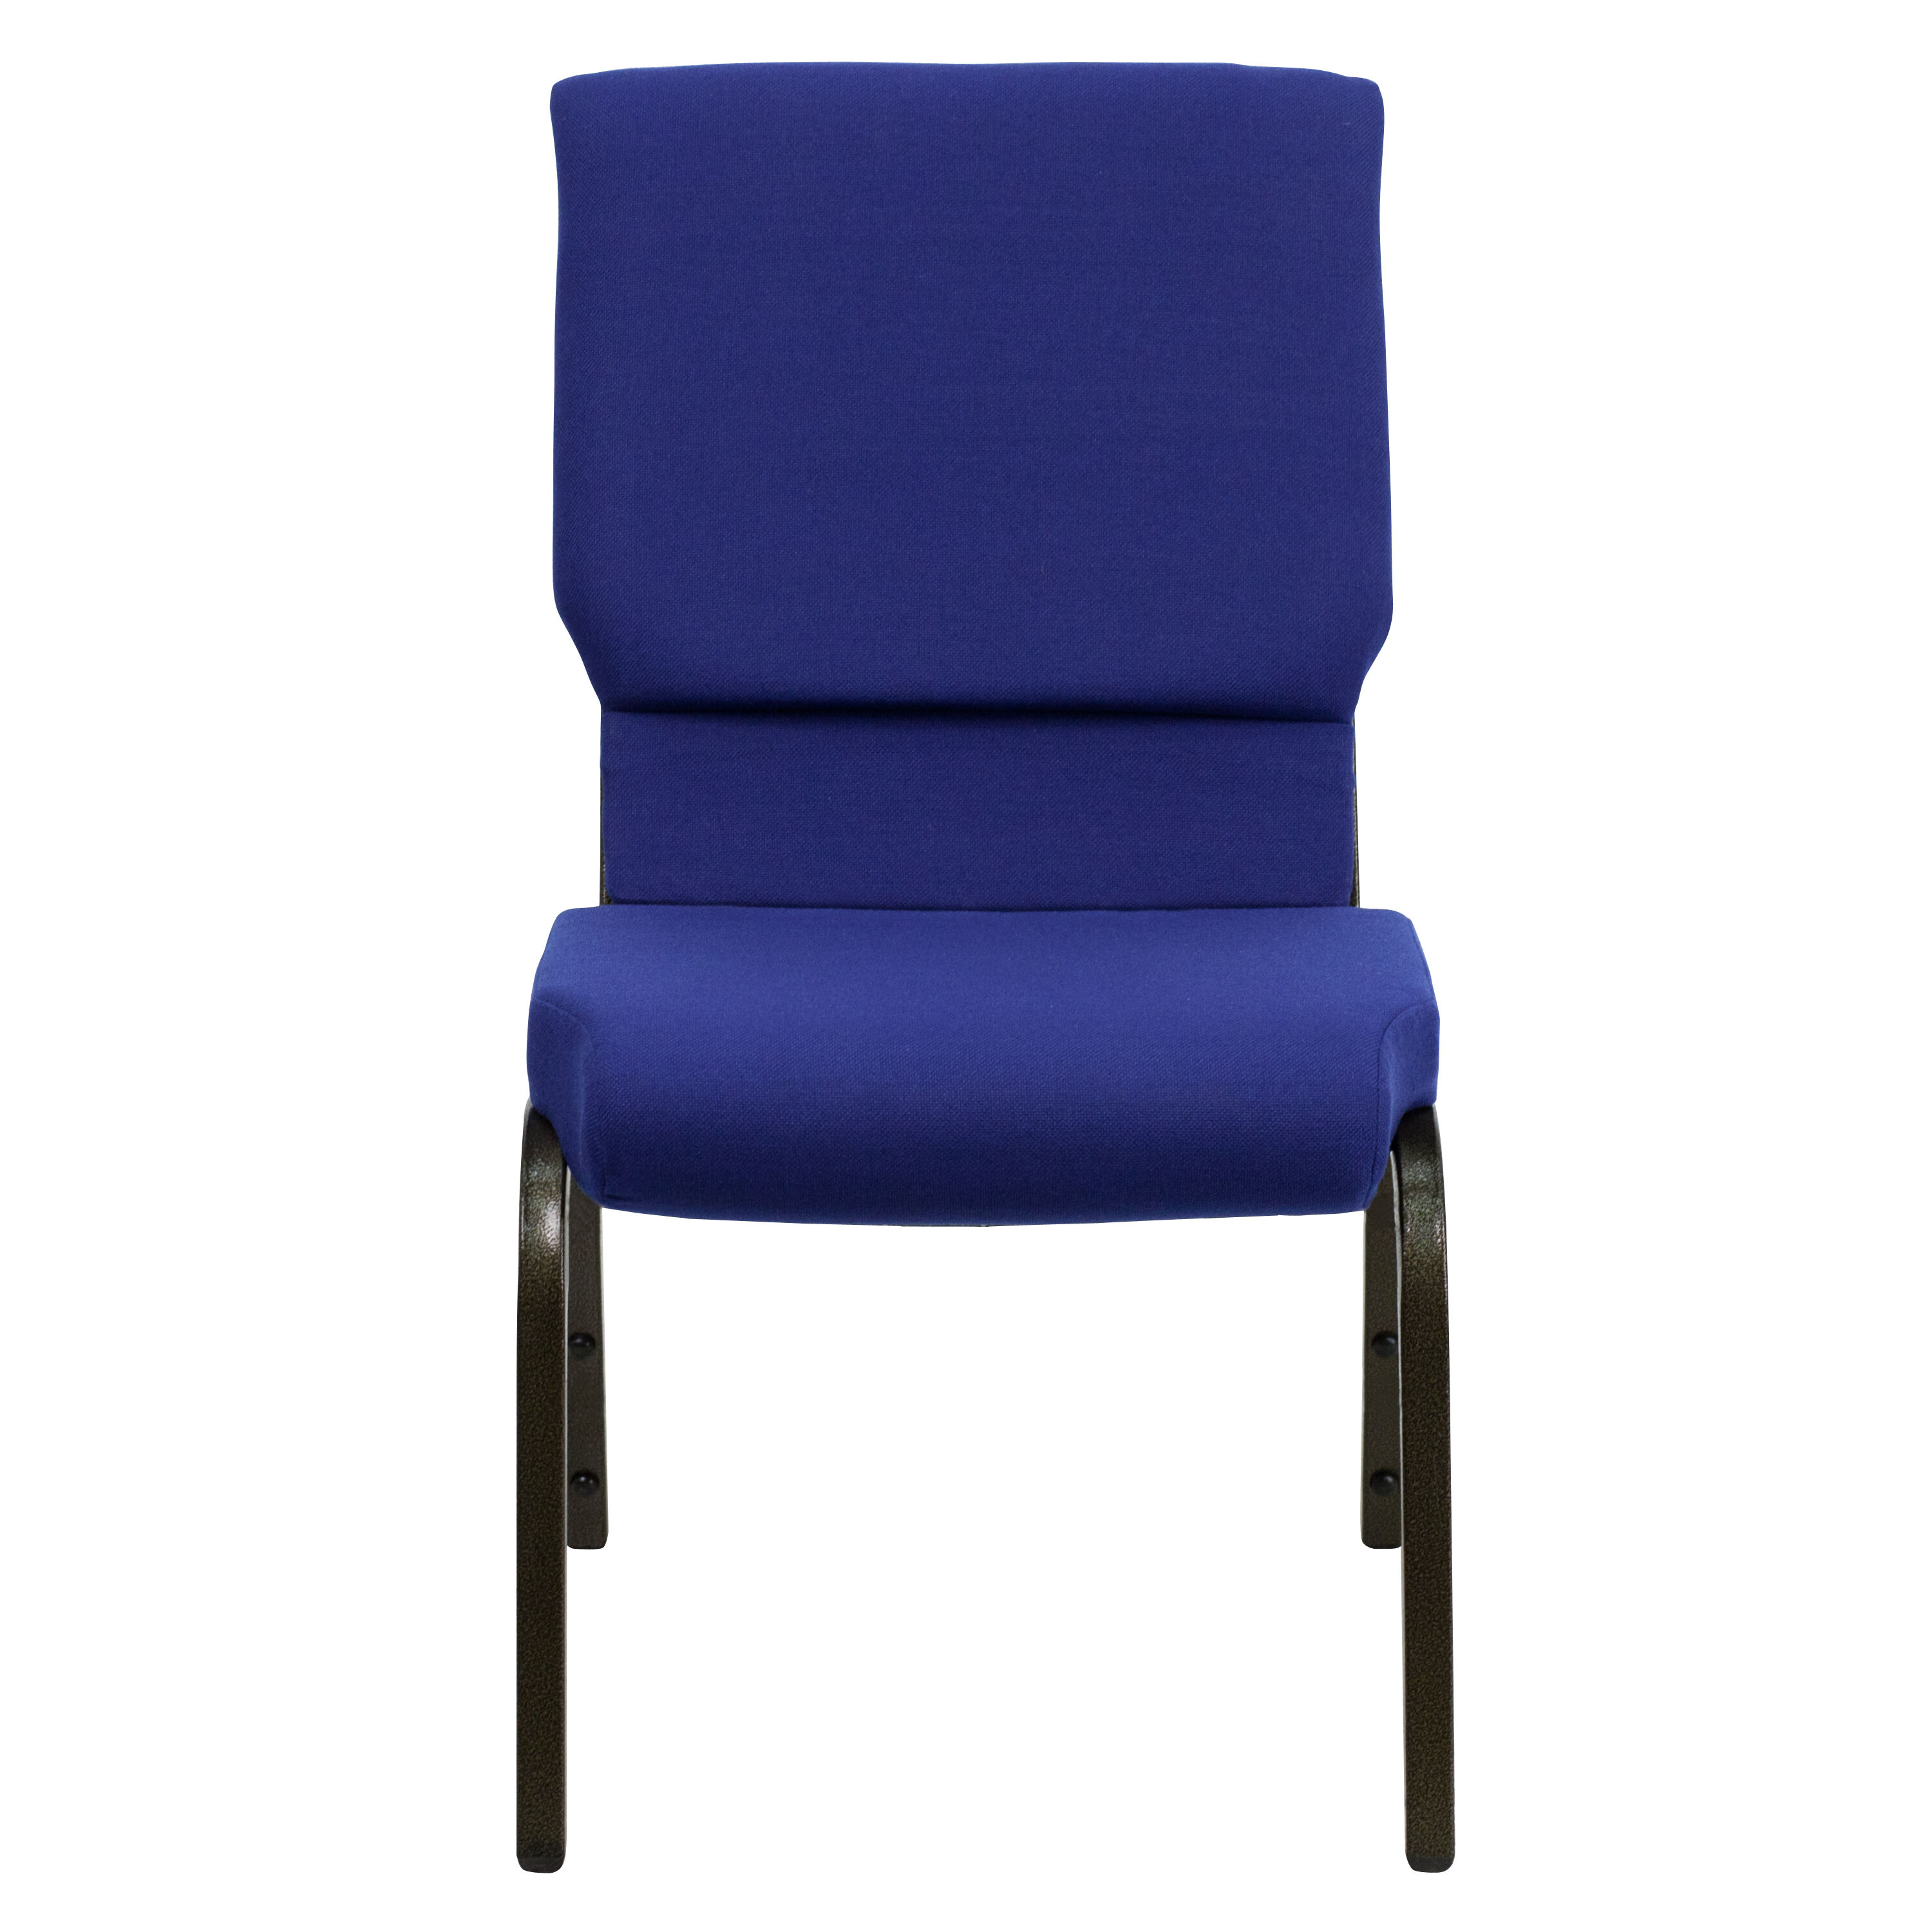 stackable church chairs princess anne chair blue fabric xu ch 60096 nvy gg